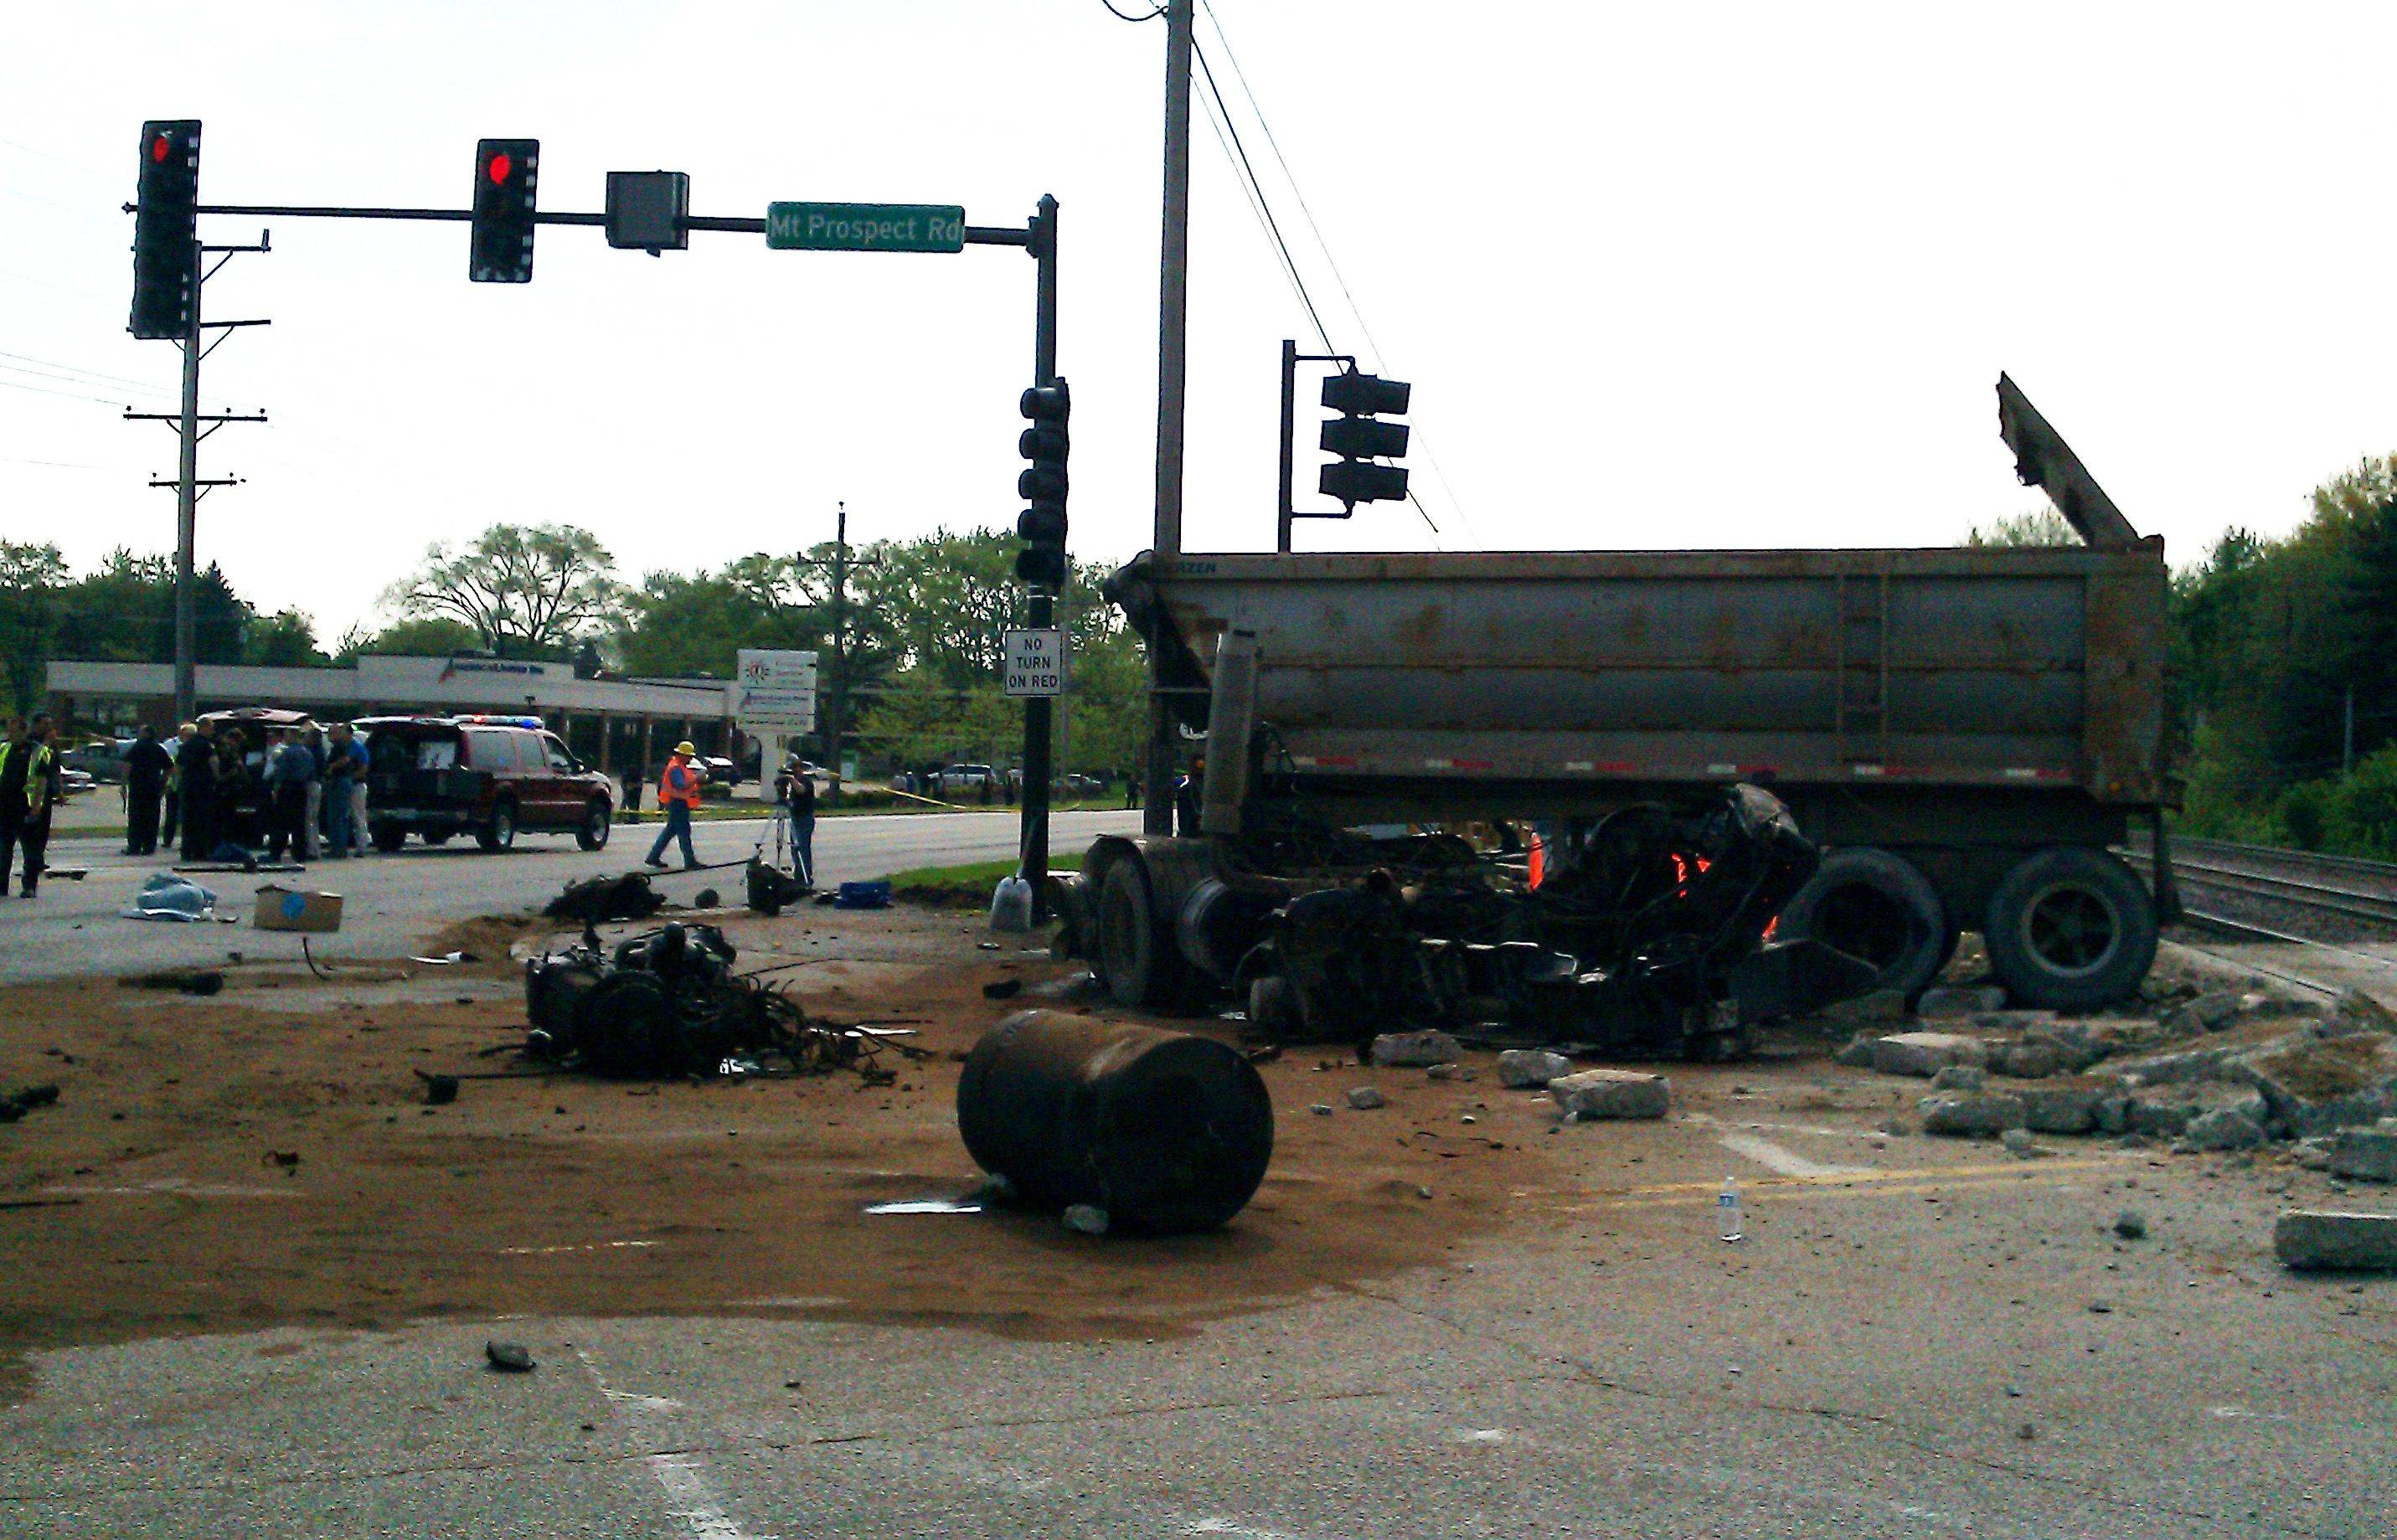 Metra said all warnings were activated before a dump truck was driven in front of a train in Des Plaines on Friday.